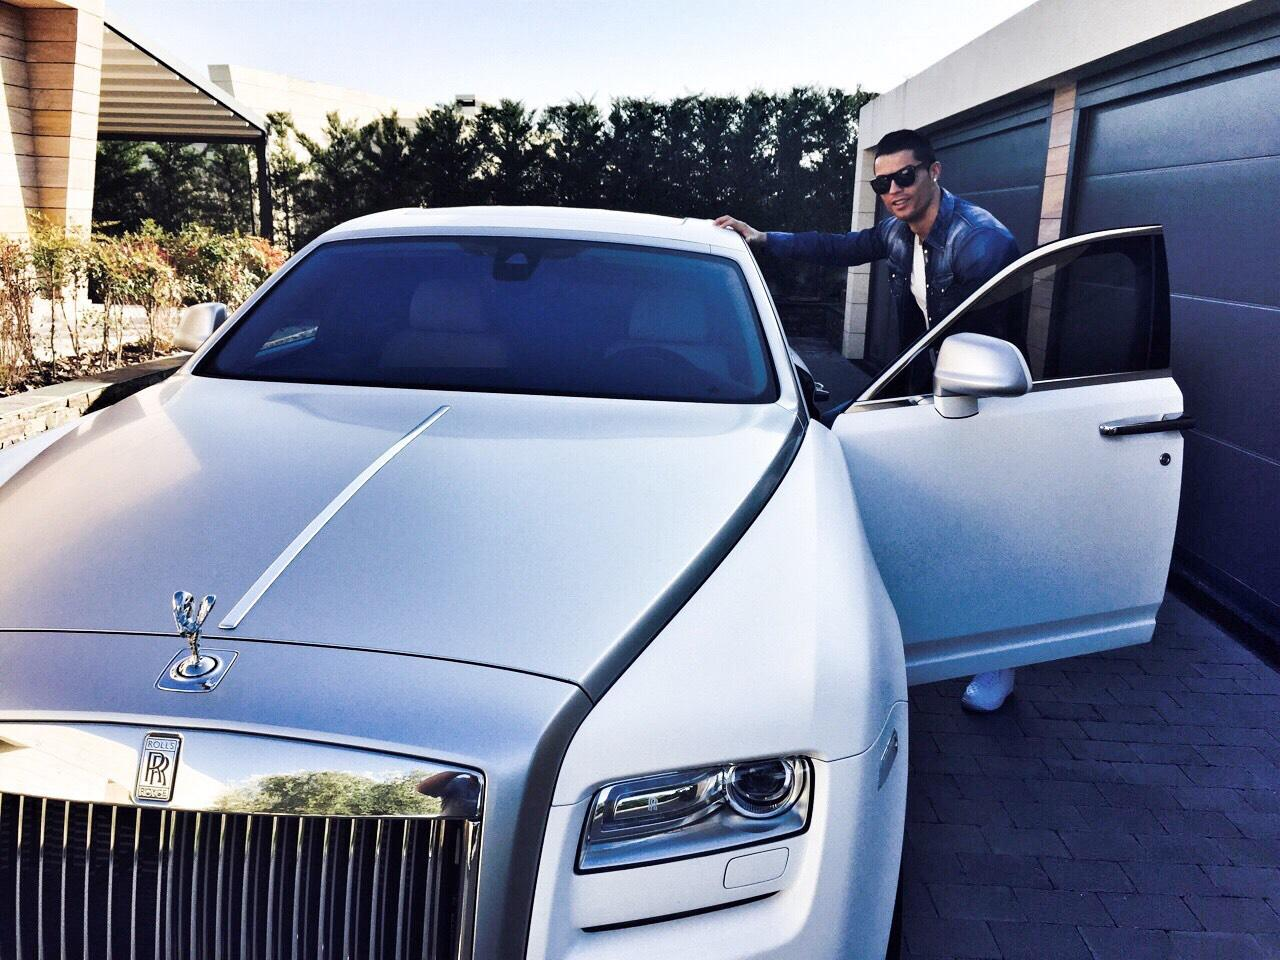 Lionel Messi Ine House Cars Luxurious Lifestyle Worth